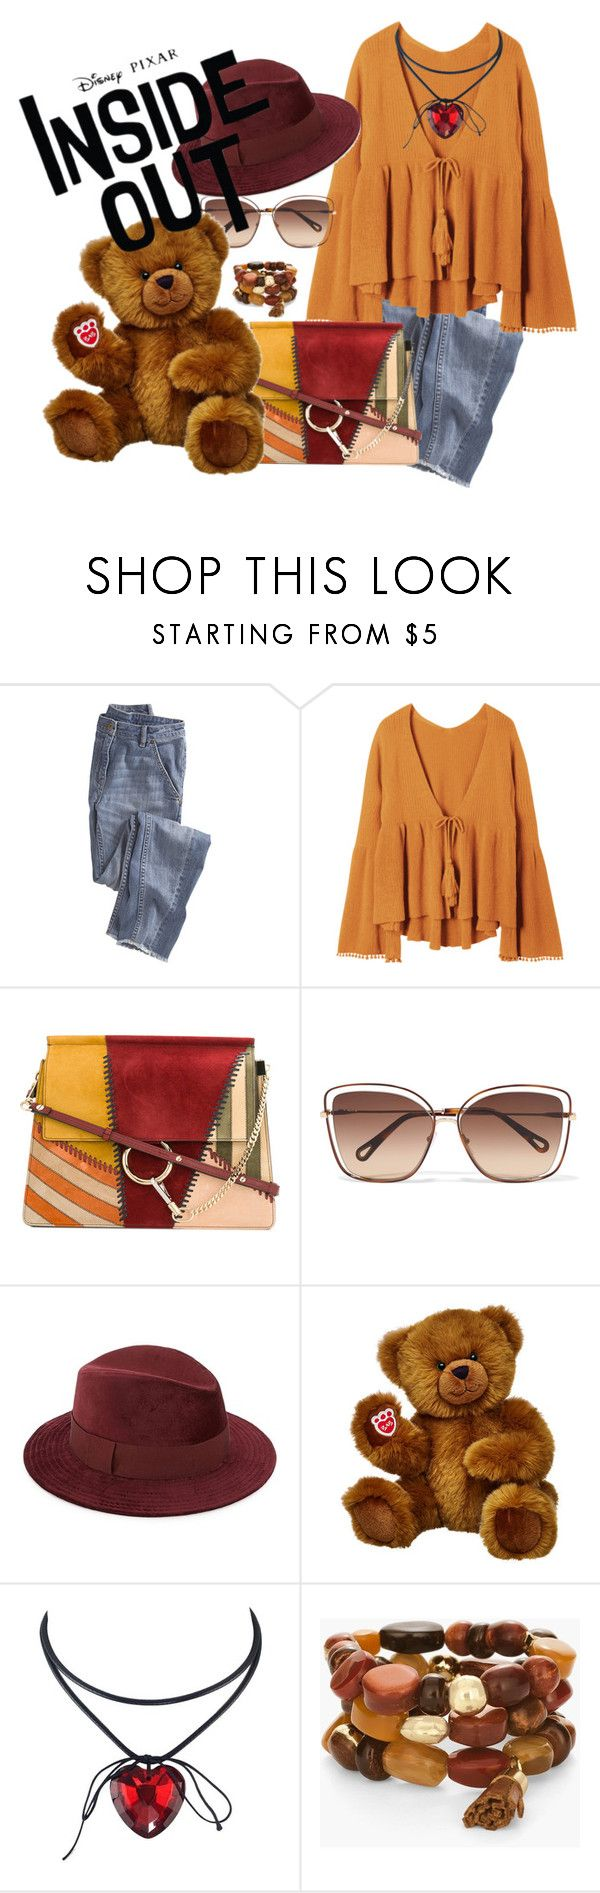 """My teady bear"" by cristinaraposo ❤ liked on Polyvore featuring Wrap, Chloé, Saks Fifth Avenue, Chico's and Disney"